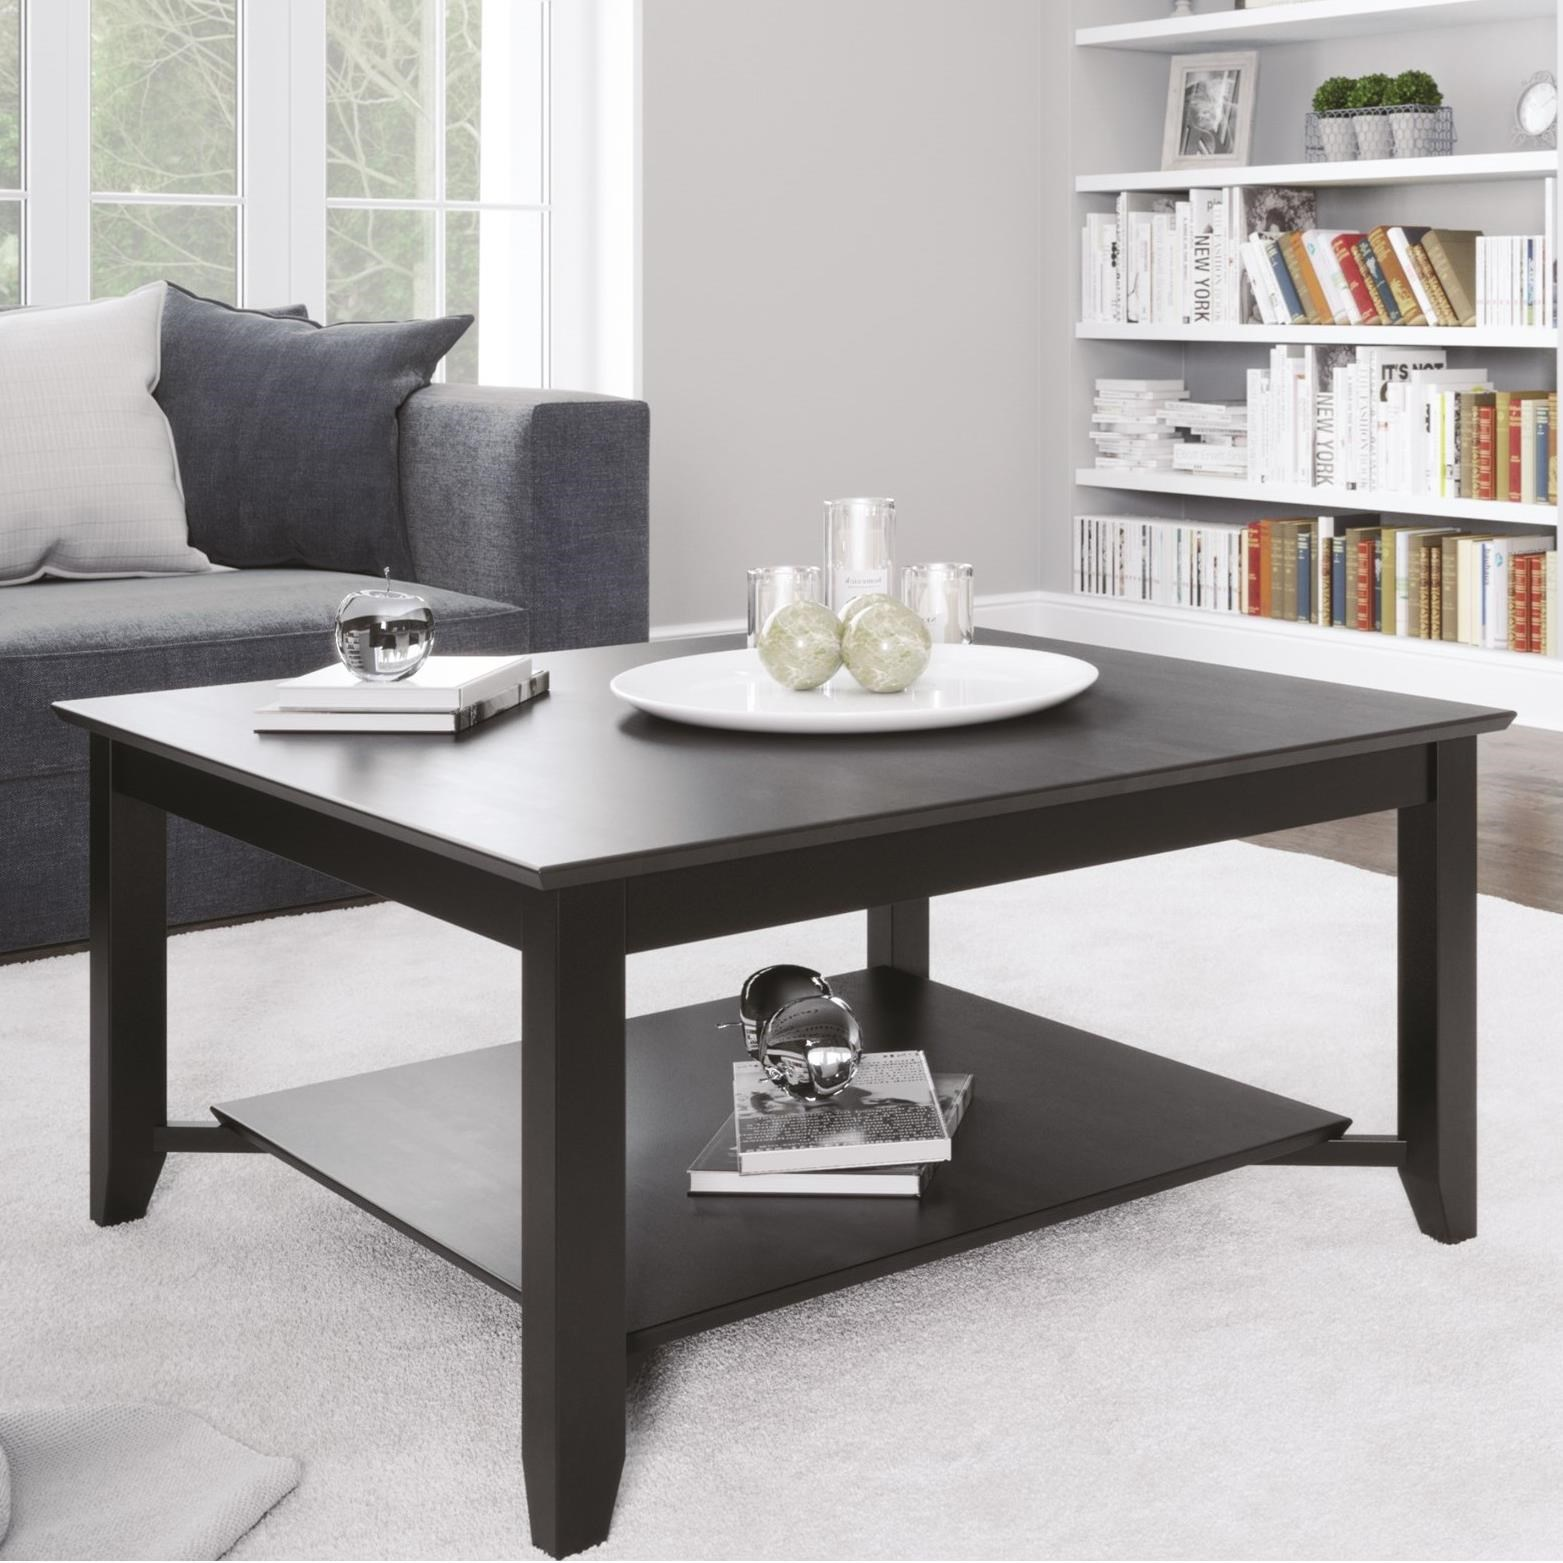 Canadel Living Customizable Rectangular Coffee Table by Canadel at Williams & Kay